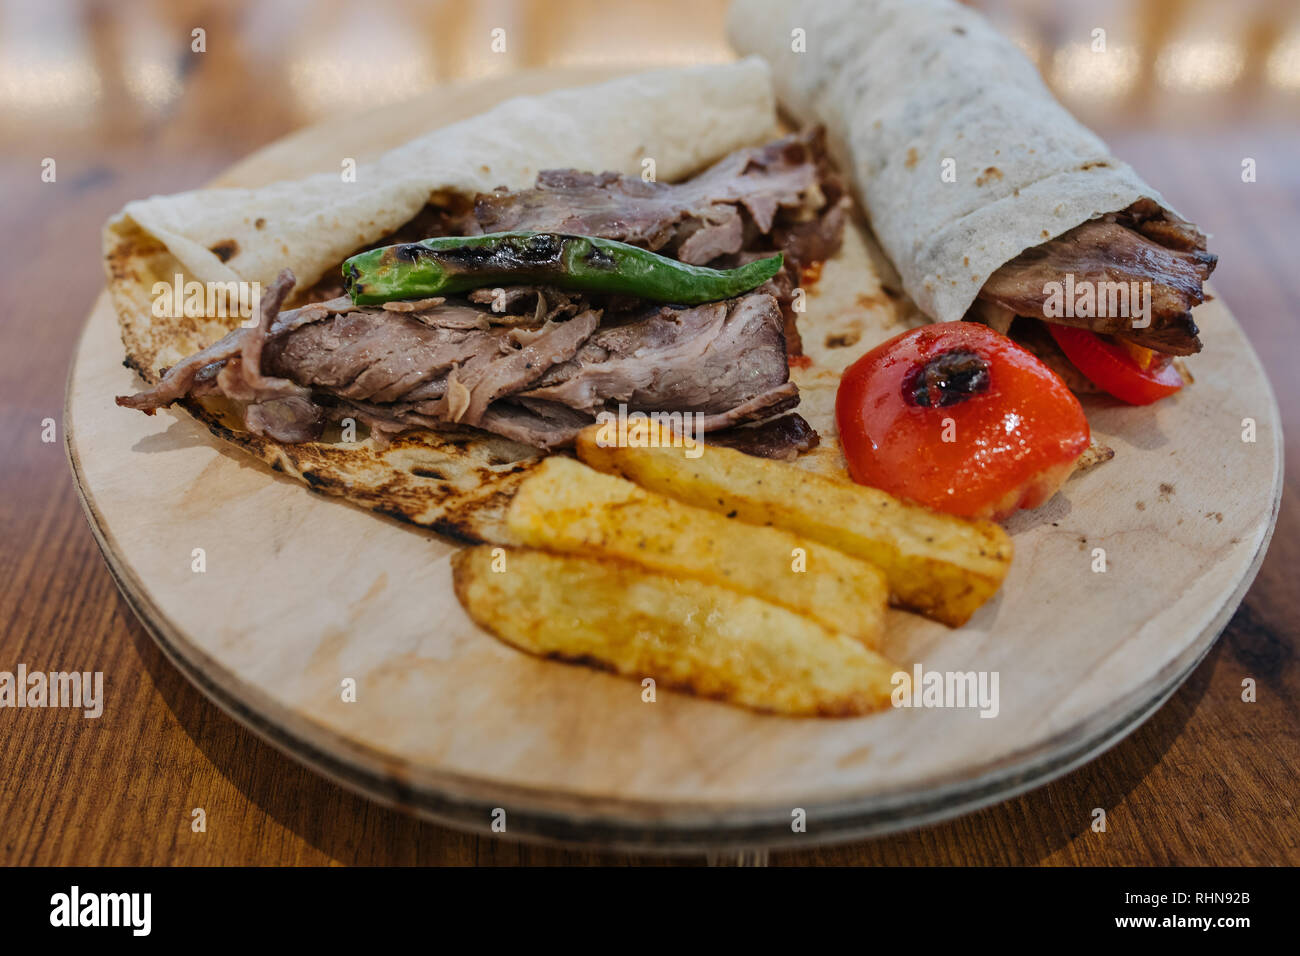 Turkish Doner Kebab Wrap Shawarma Or Gyros Traditional Turkish Doner Kebab Meat Sandwich Wrap Shawarma Or Gyros In Restaurant Stock Photo Alamy